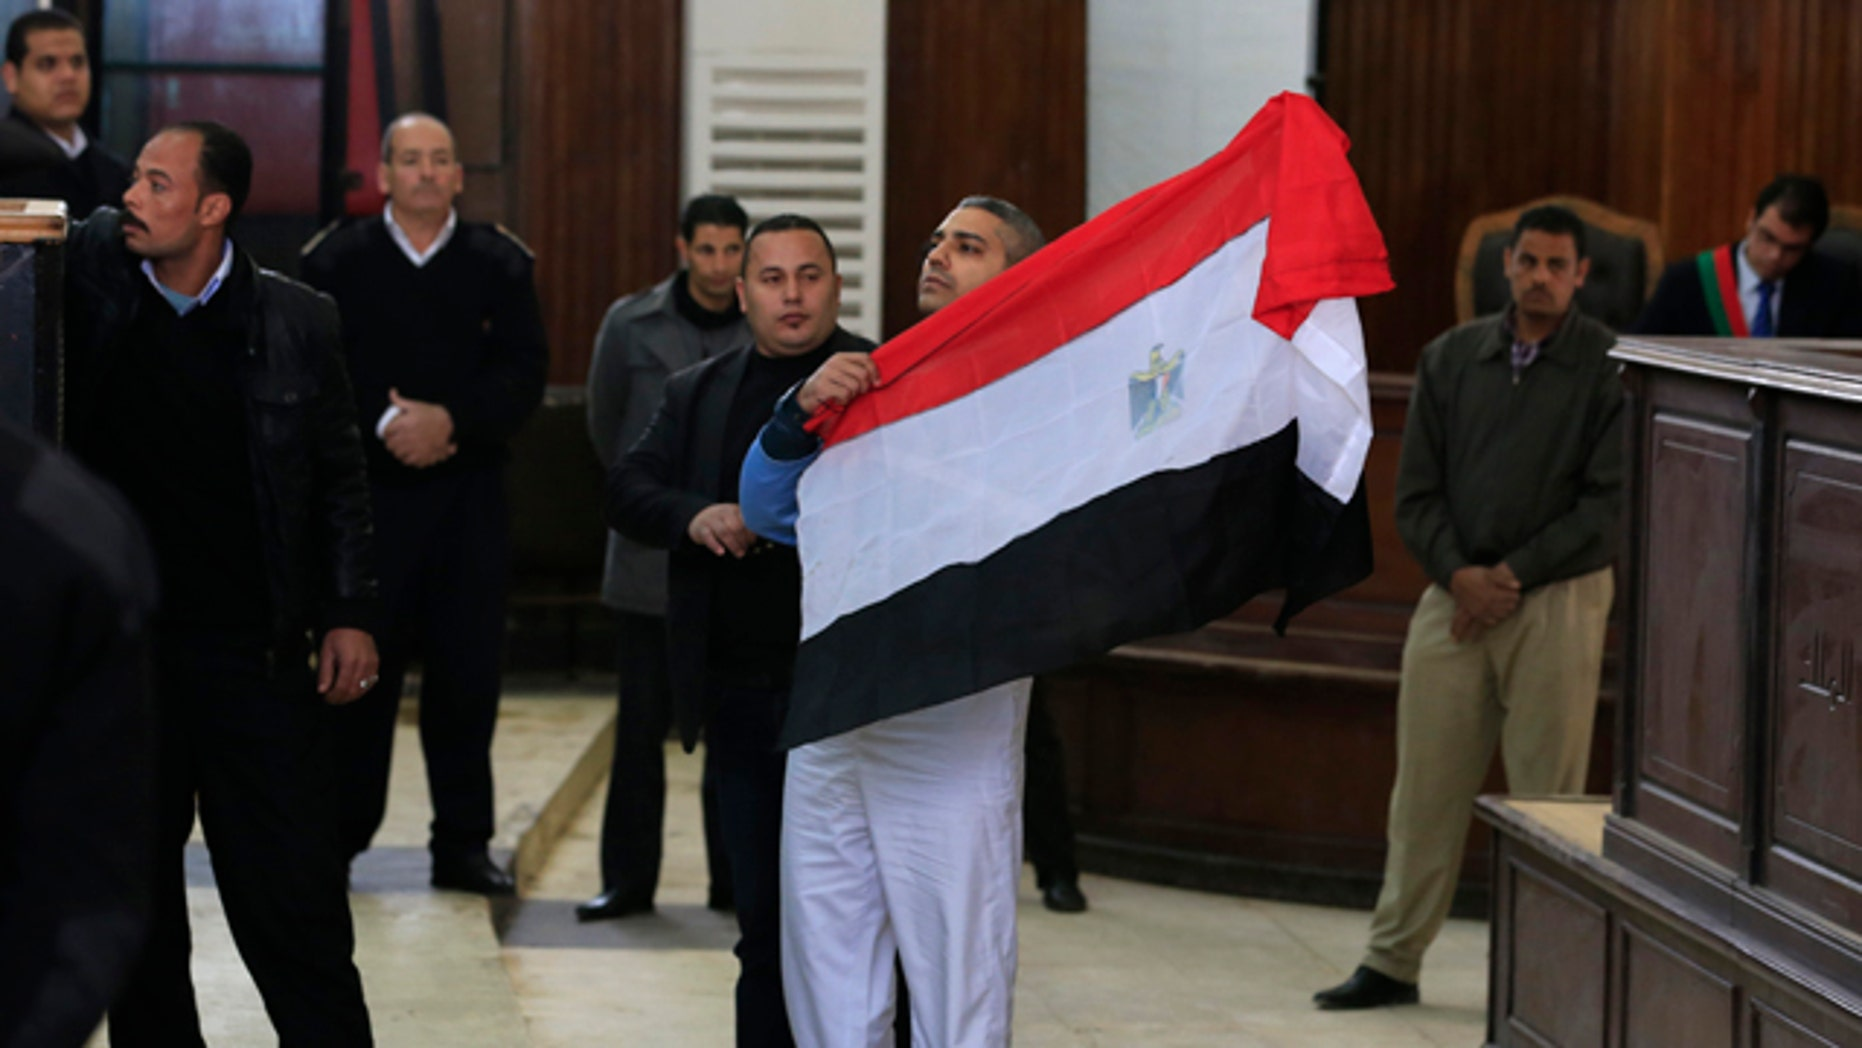 Feb. 12, 2015: Canadian Al-Jazeera English journalist Mohamed Fahmy holds up an Egyptian flag at a courthouse near Tora prison in Cairo. (AP Photo/Hassan Ammar)